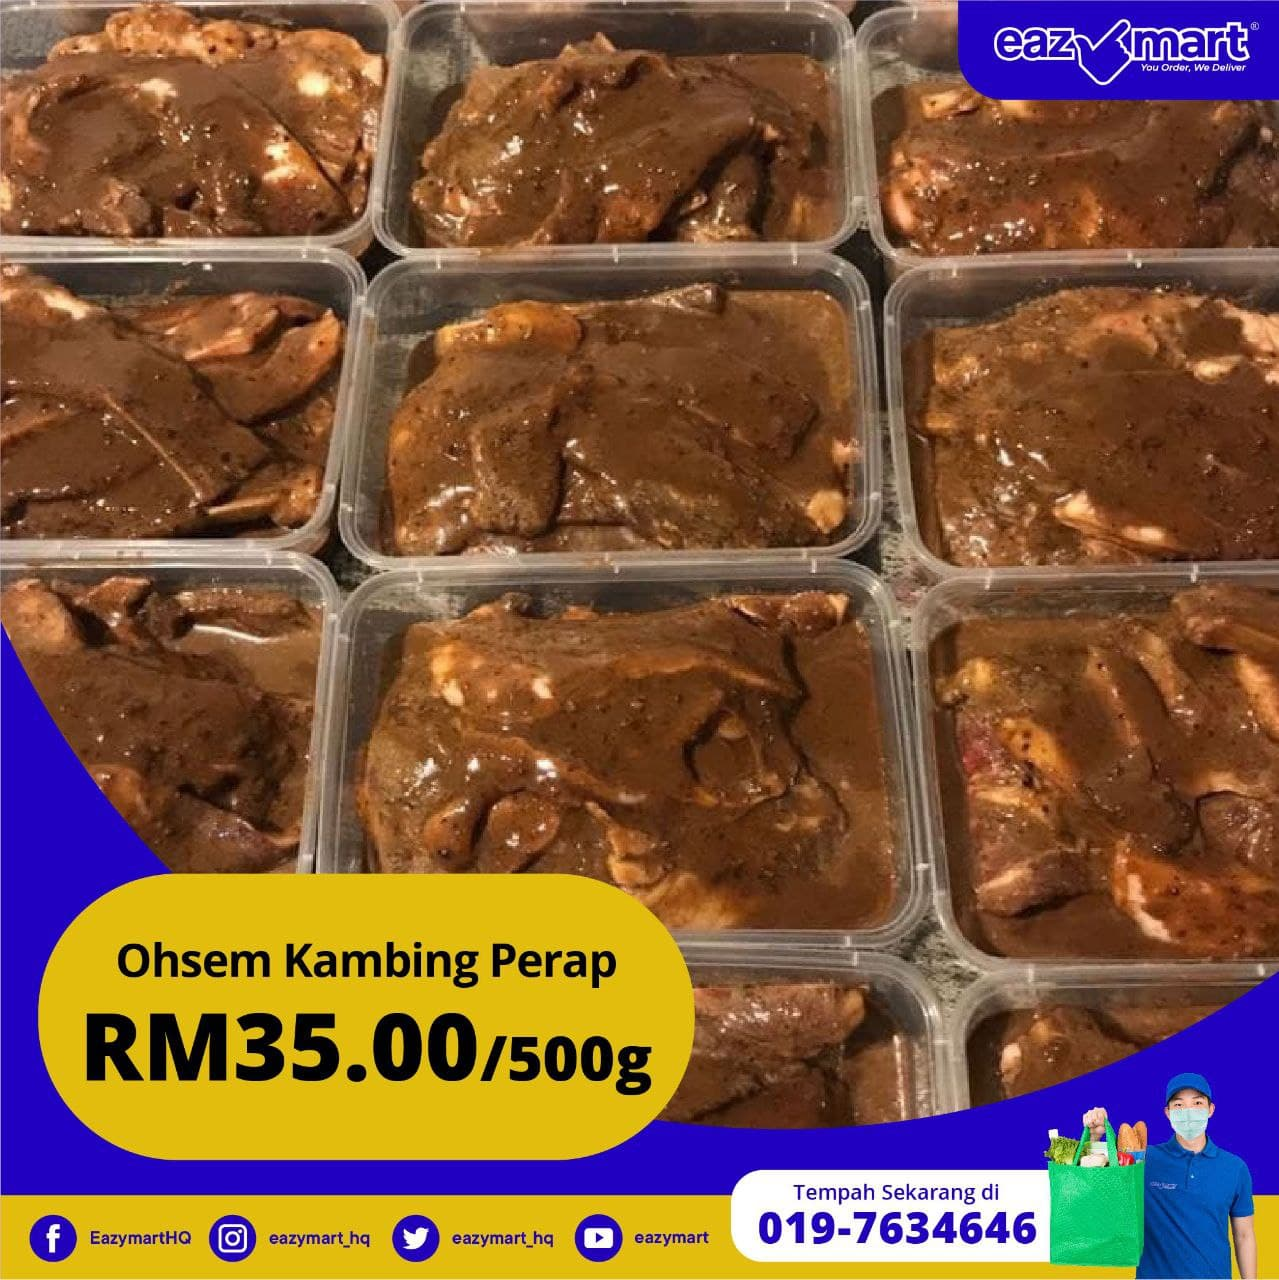 Kambing Perap (Include Postage)